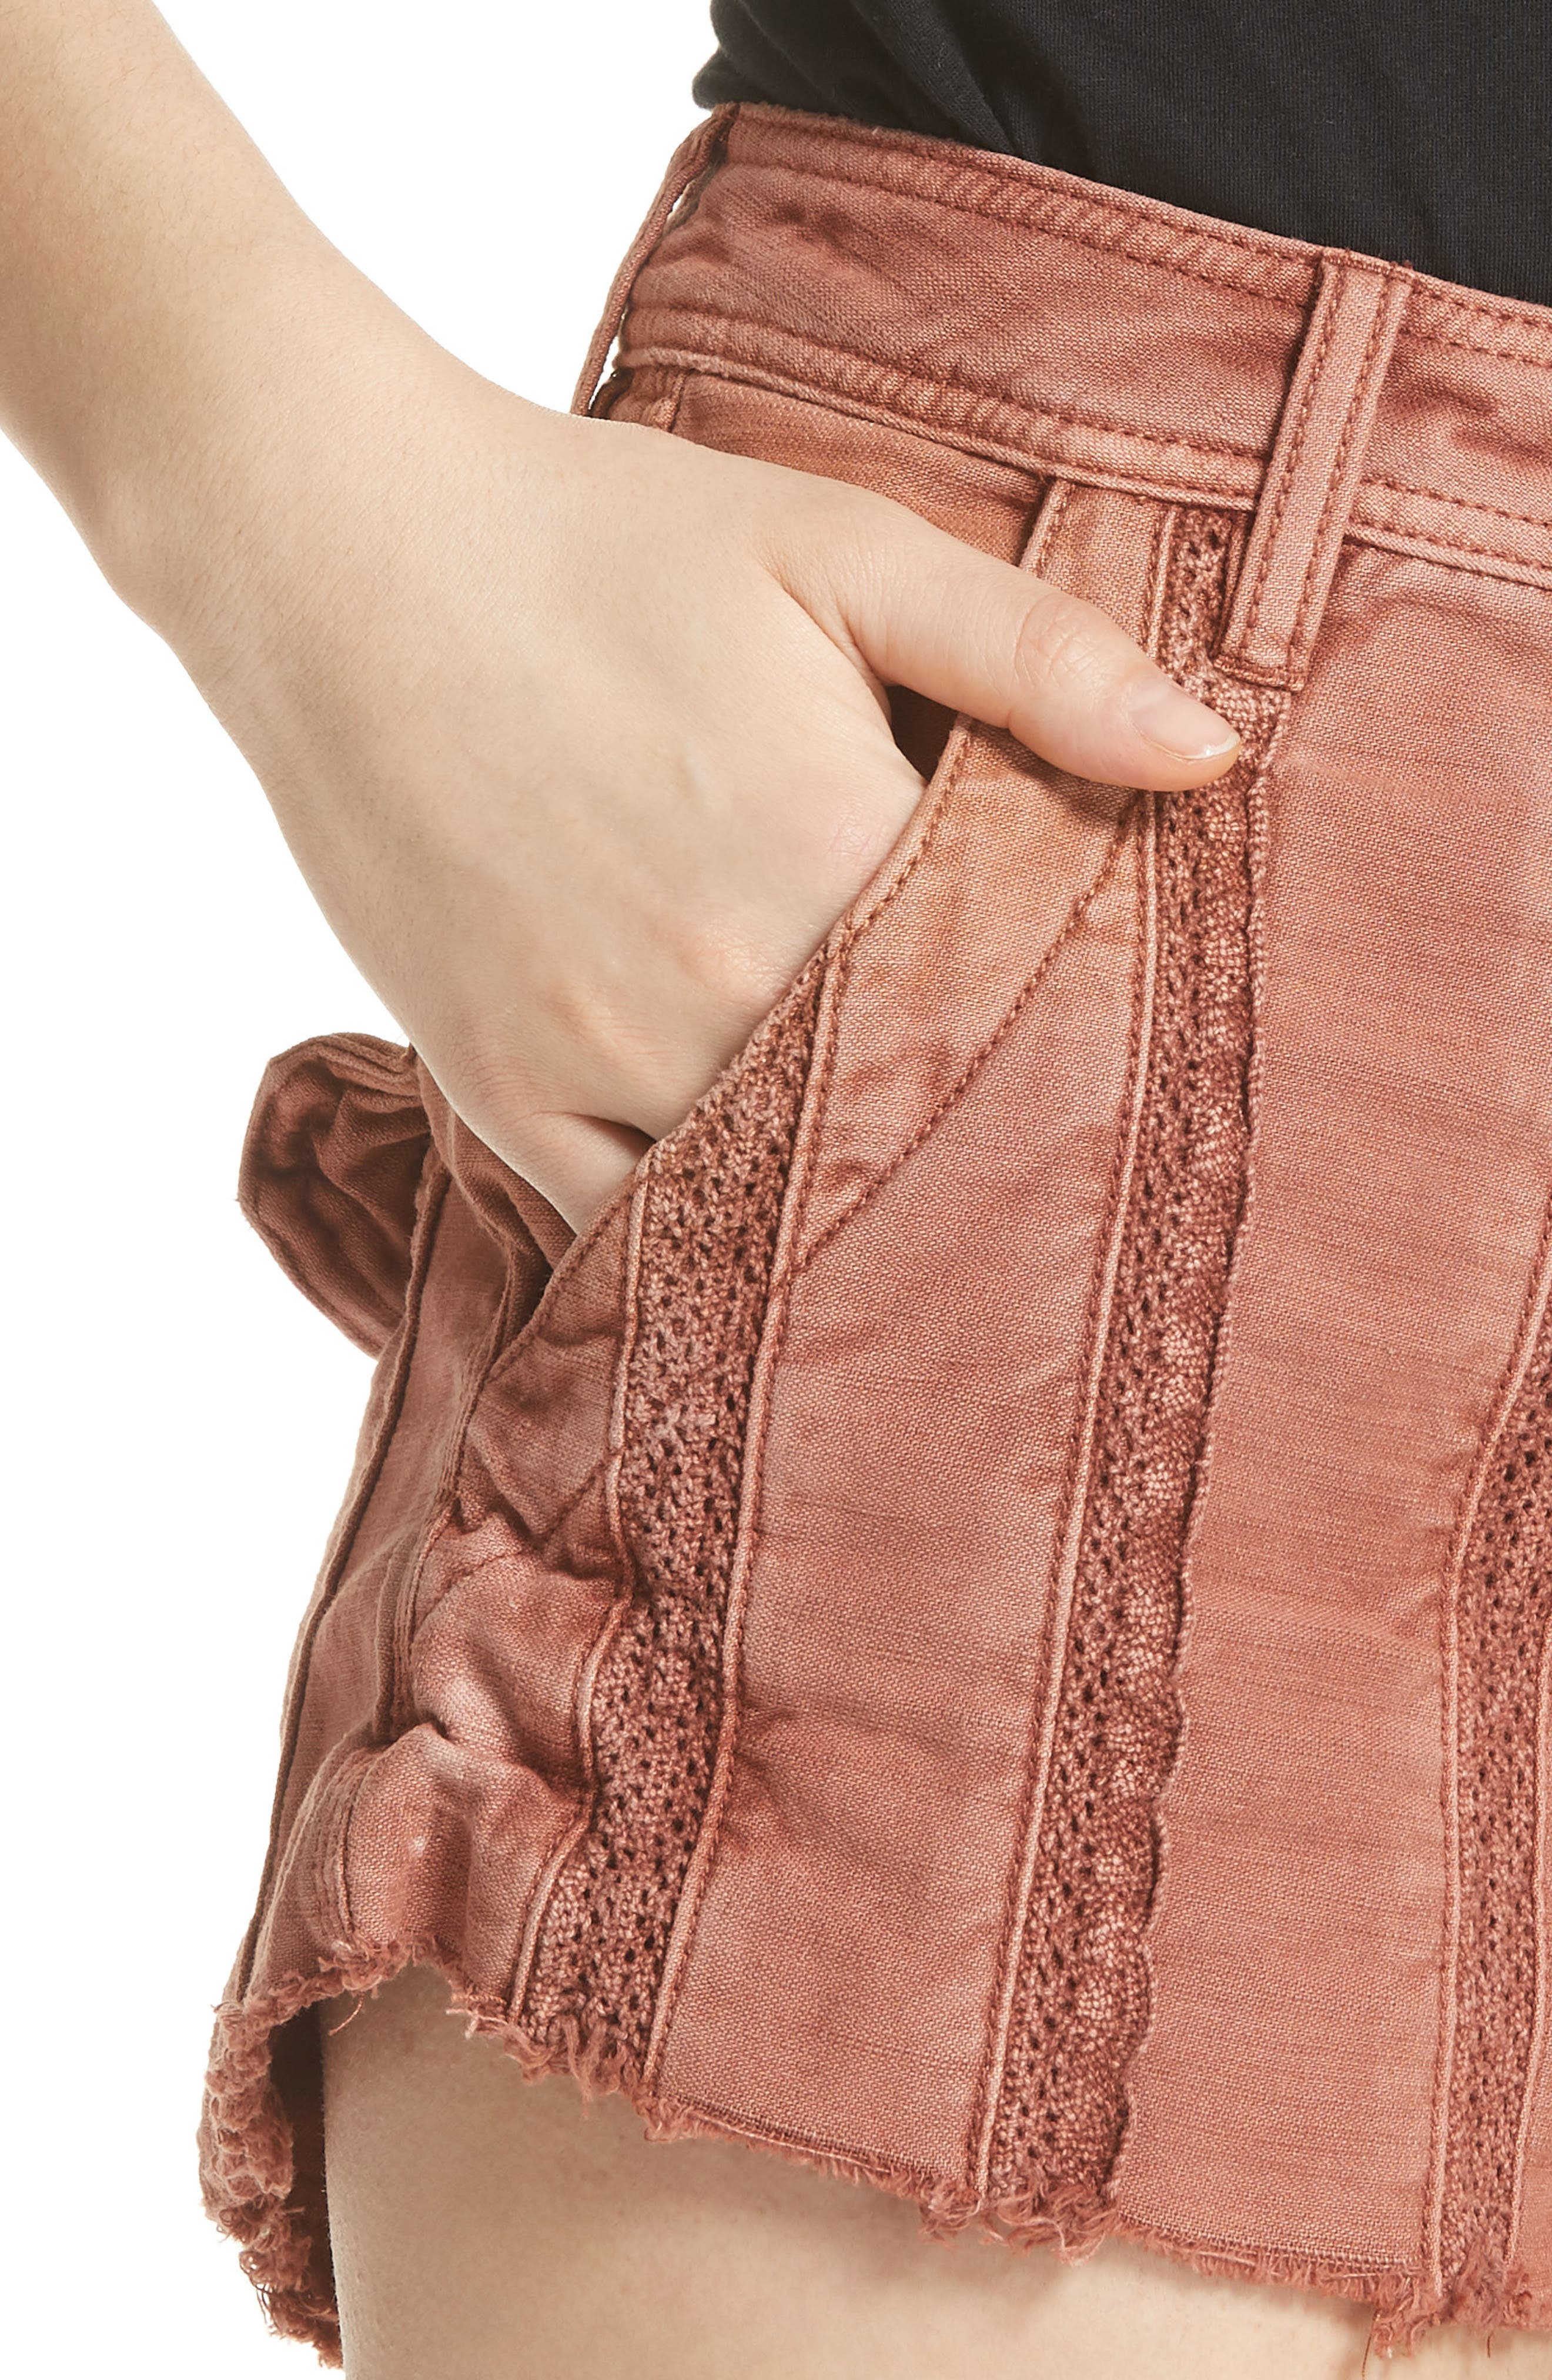 Great Expectations Lace Cutout Shorts,                             Alternate thumbnail 8, color,